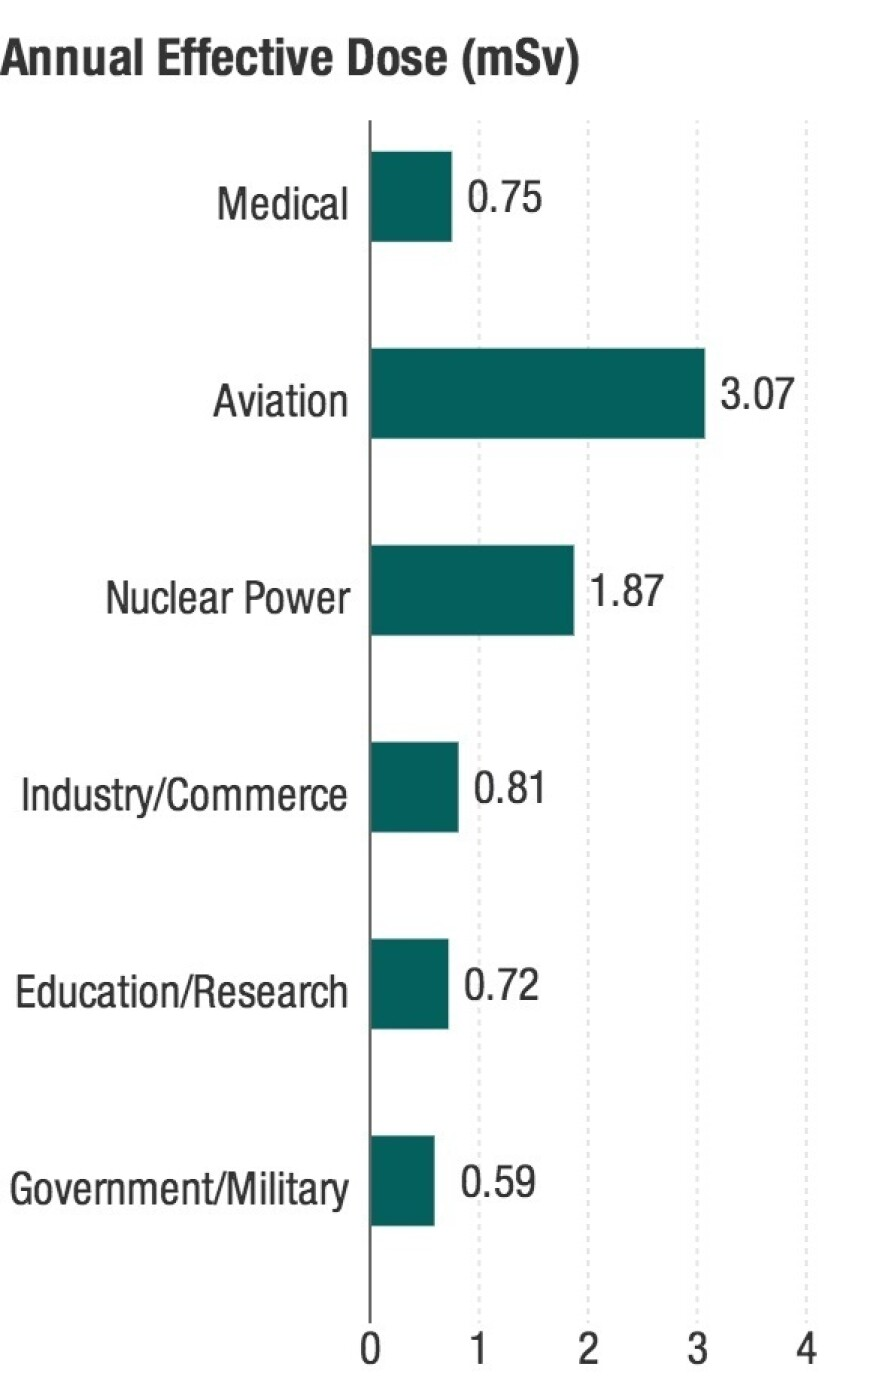 Data from the National Council on Radiation Protection and Measurements show the average annual effective dose for workers in various fields. Aviation doses are estimated based on flight routes and altitudes.